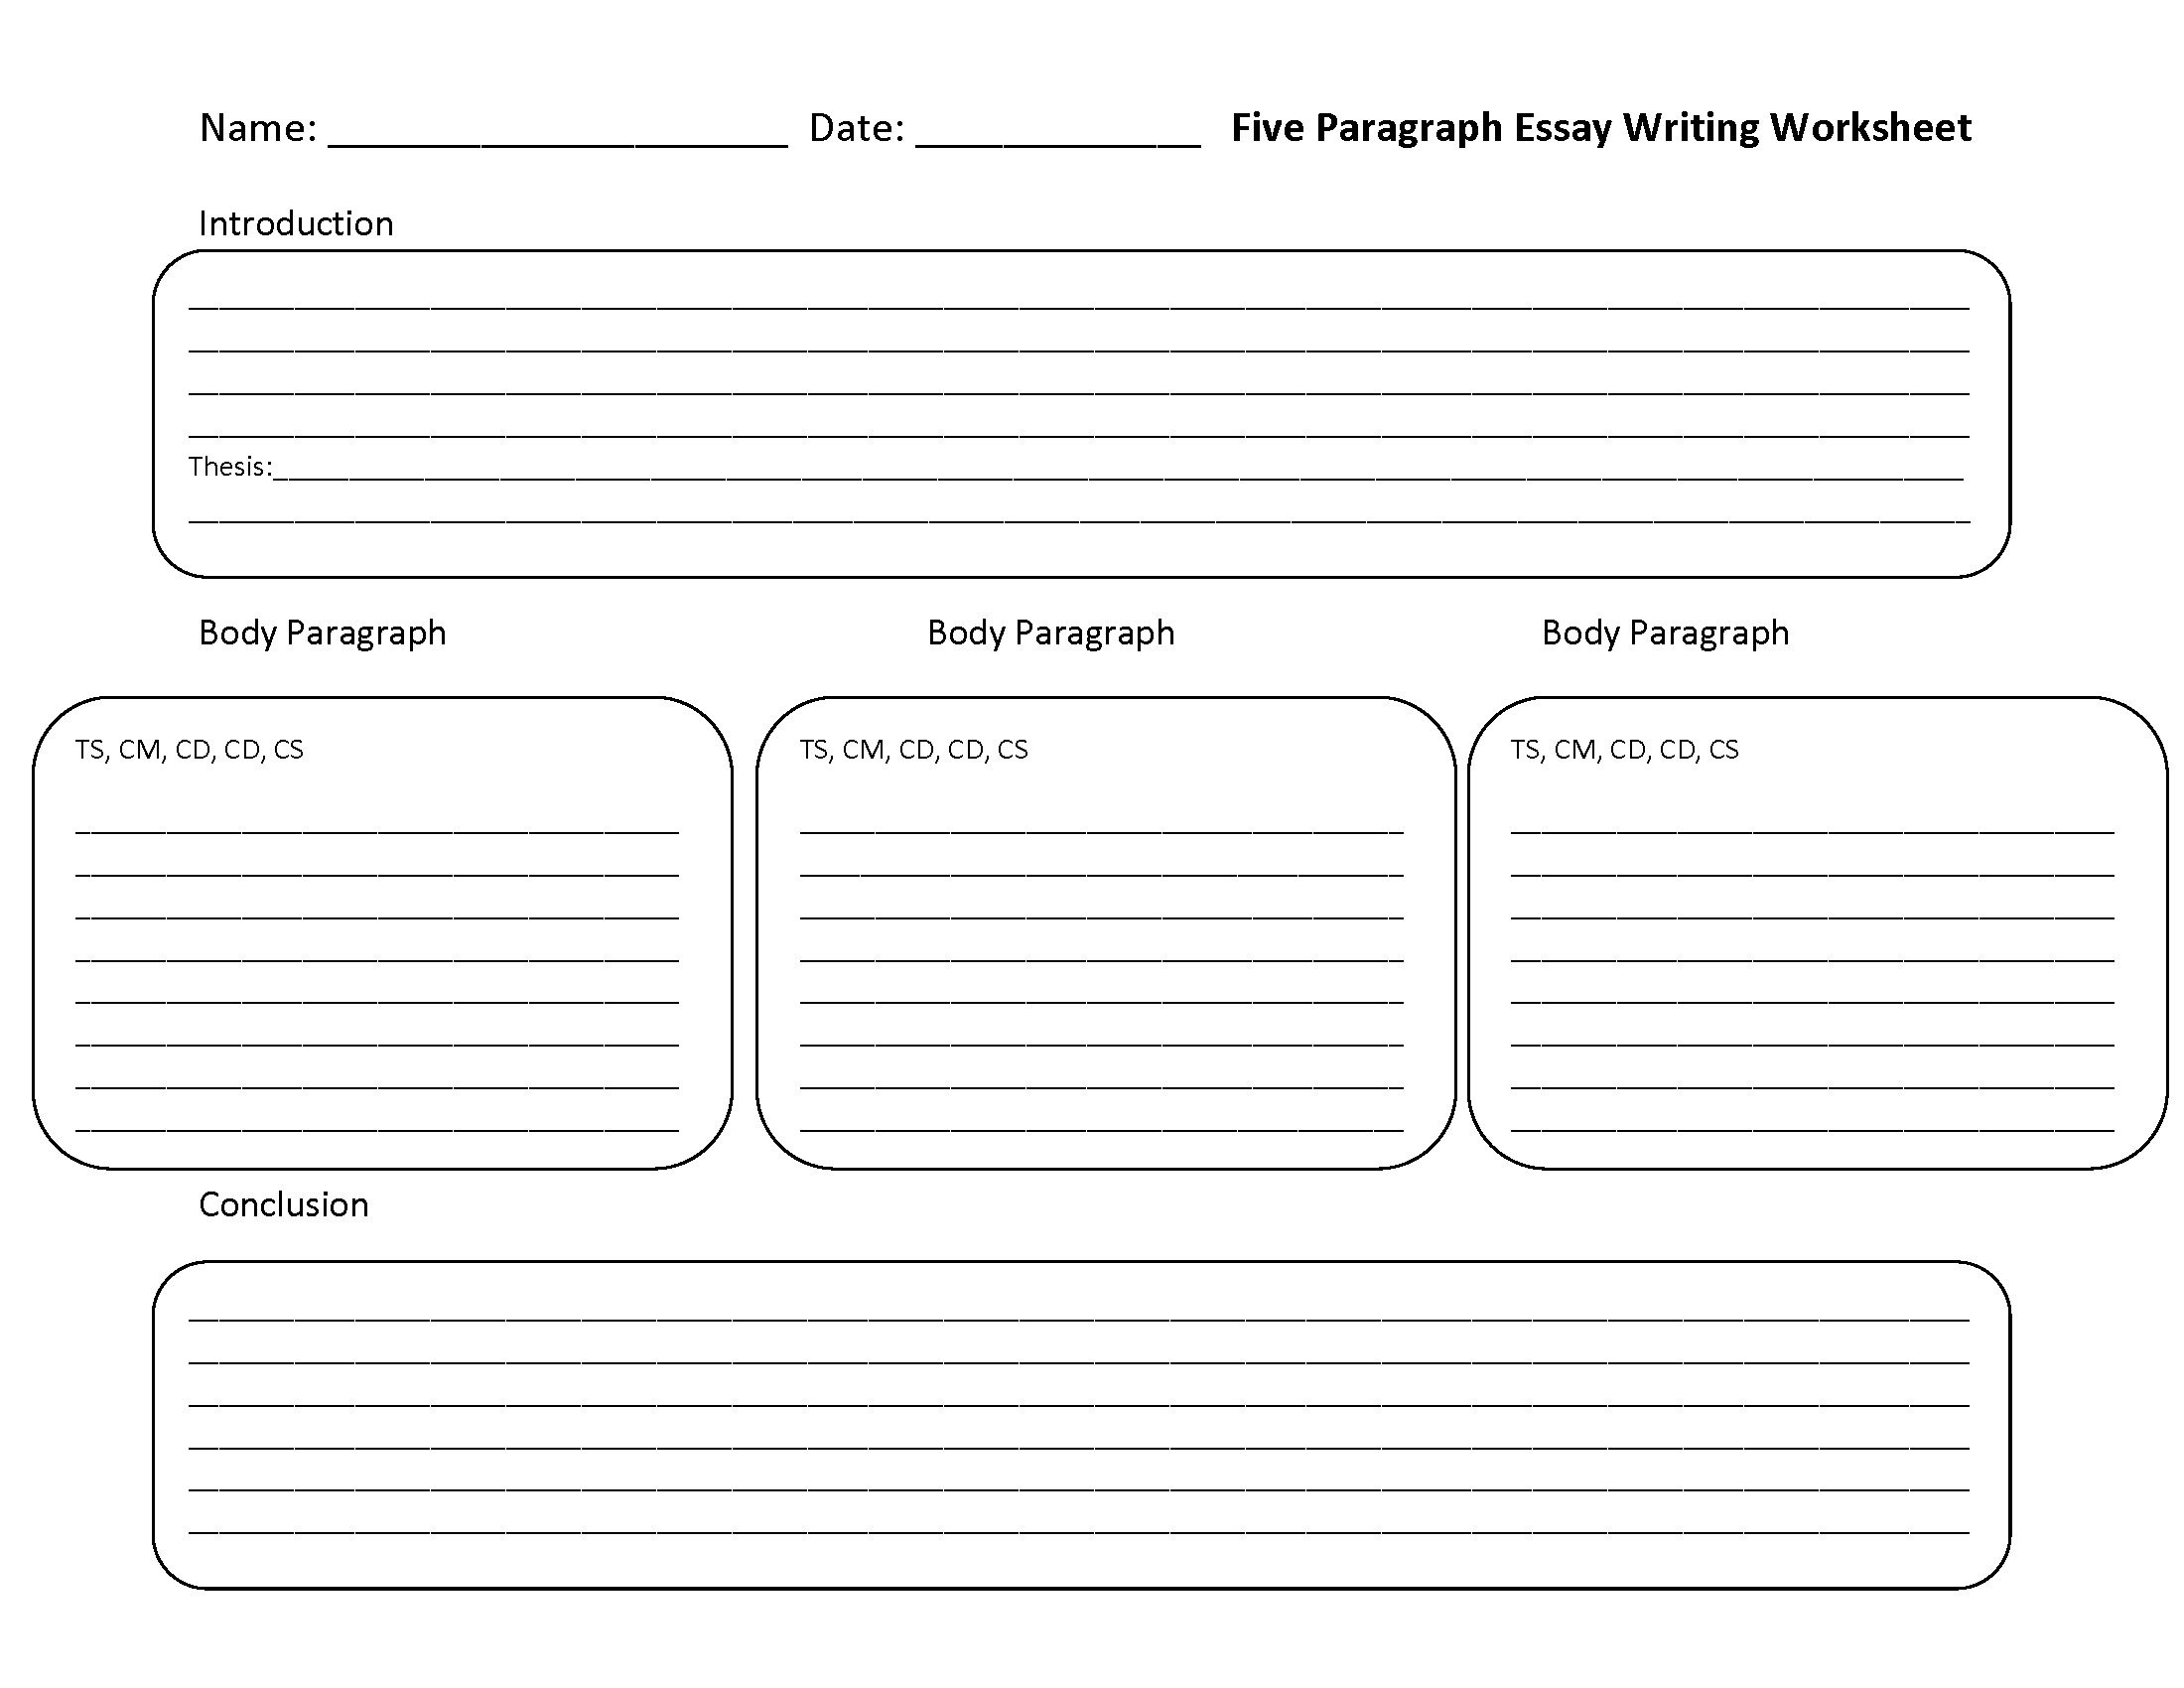 writing worksheets essay writing worksheets in 5 paragraph essay template 4th grade